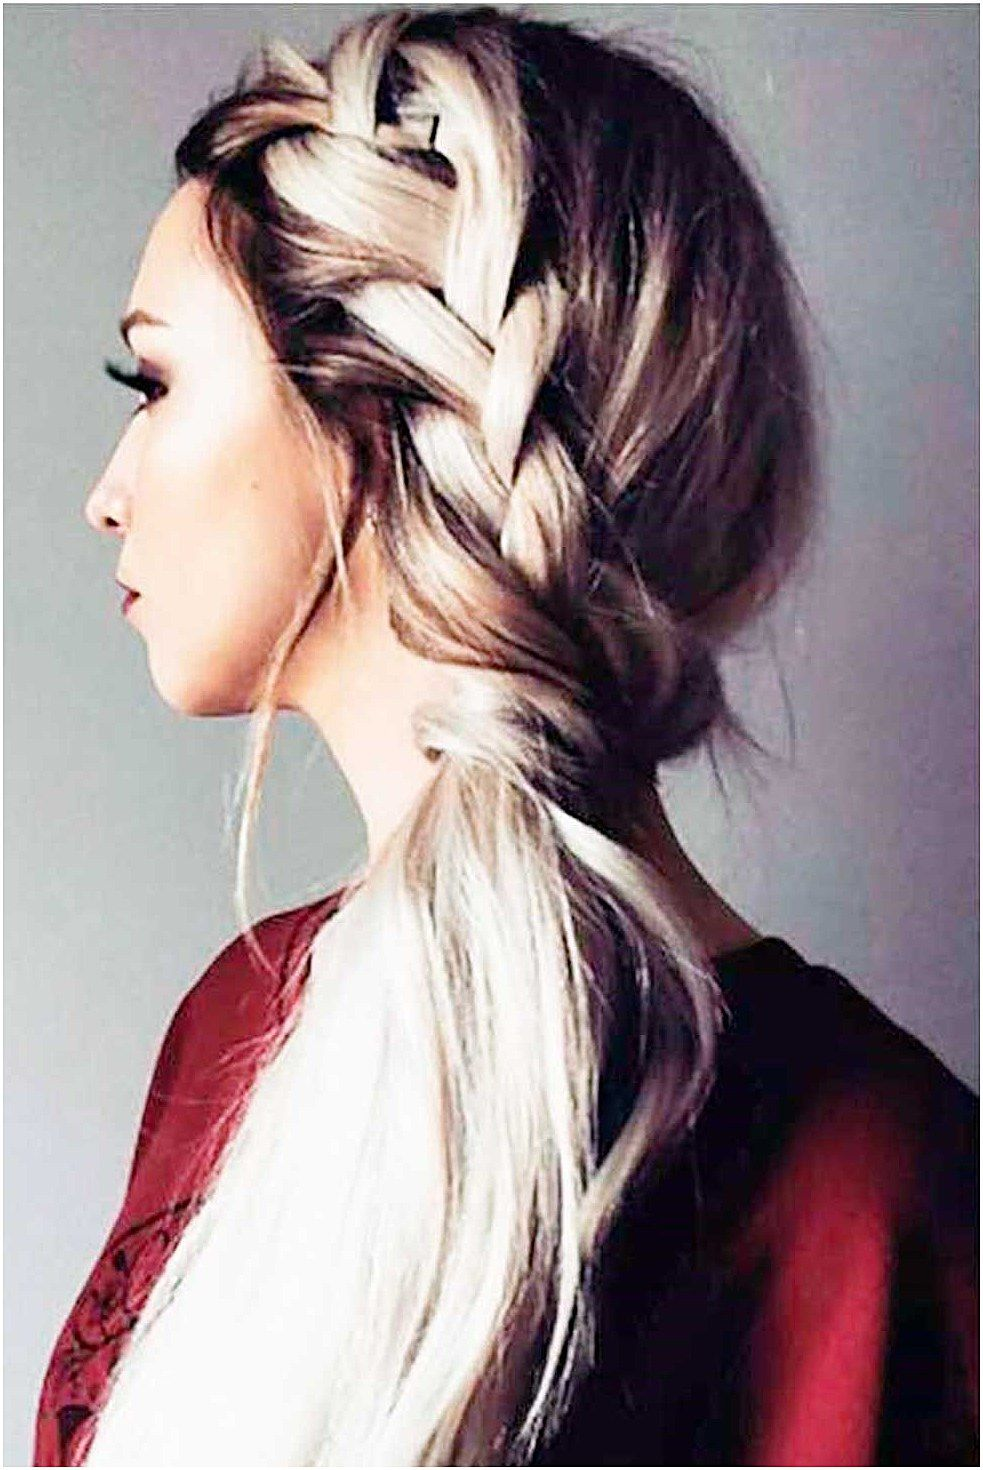 """Amazing Braid Hairstyles for Christmas Party and other Holidays ? See more: glaminati.com/… <a class=""""pintag"""" href=""""/explore/QuickBraid/"""" title=""""#QuickBraid explore Pinterest"""">#QuickBraid</a> <a class=""""pintag"""" href=""""/explore/QuickBraidedHairstyle/"""" title=""""#QuickBraidedHairstyle explore Pinterest"""">#QuickBraidedHairstyle</a>  click for info.<p><a href=""""http://www.homeinteriordesign.org/2018/02/short-guide-to-interior-decoration.html"""">Short guide to interior decoration</a></p>"""